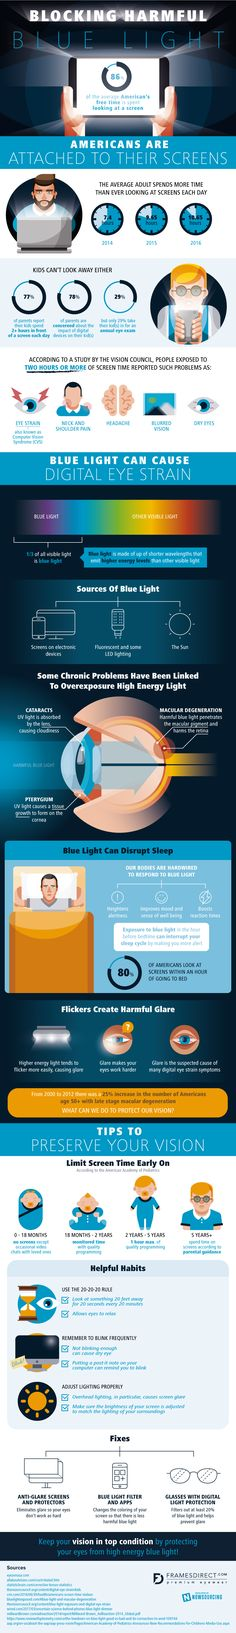 Blue light exposure from your electronics can have a negative impact on your health, including worsening your sleeping patterns. This infographic explains how blue light affects us and how you can reduce your exposure to it.